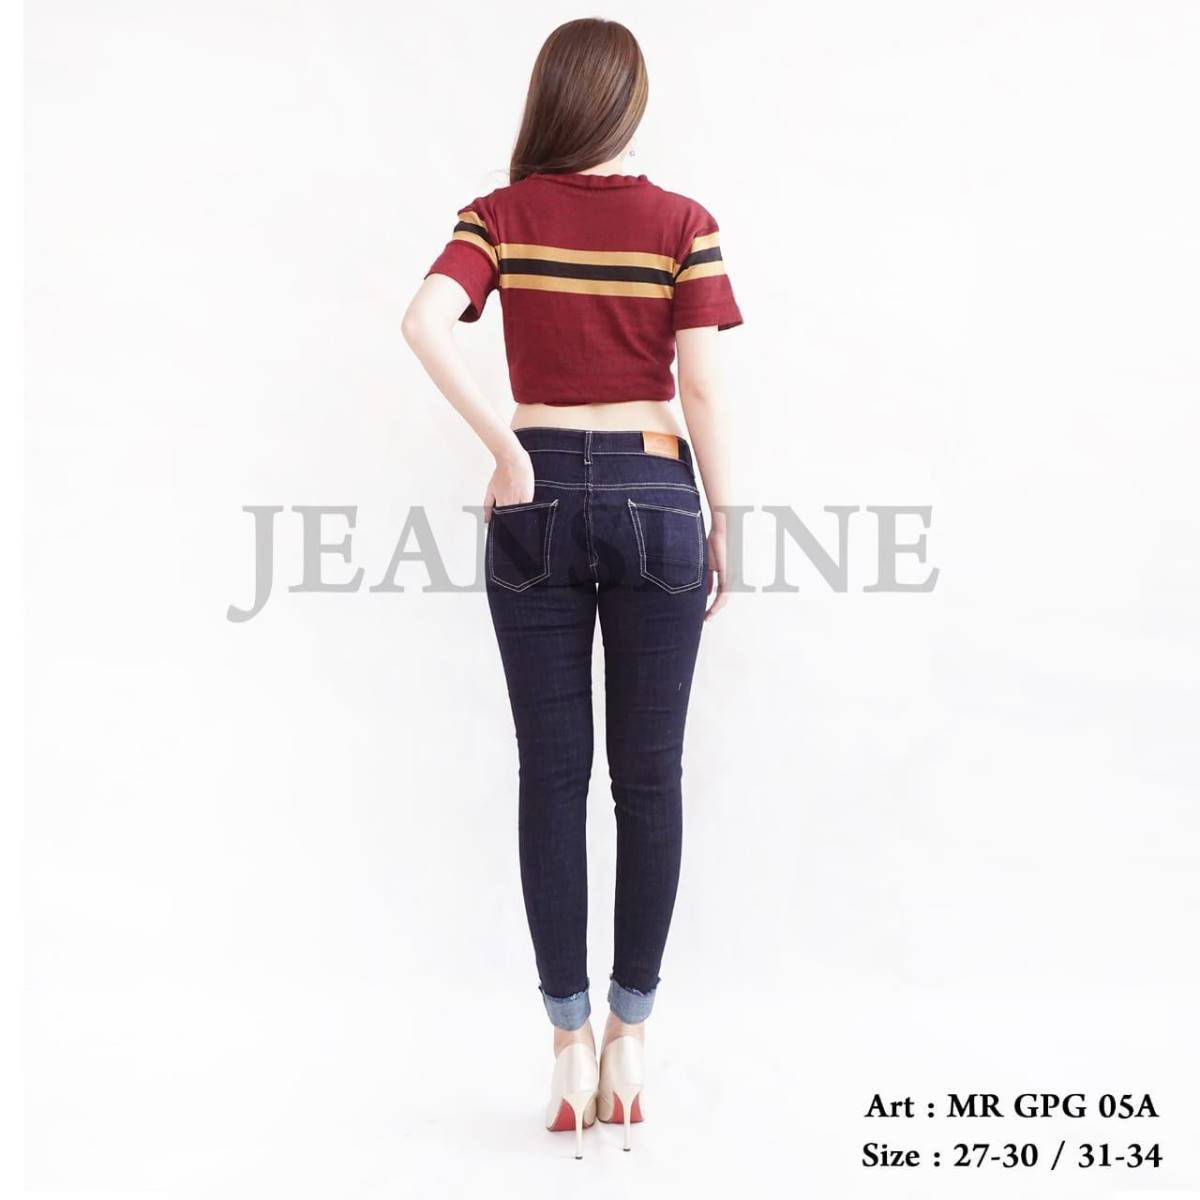 Celana Panjang Jeans Ladies (mr Gpg 05a) - Size 31, 32, 33, 342